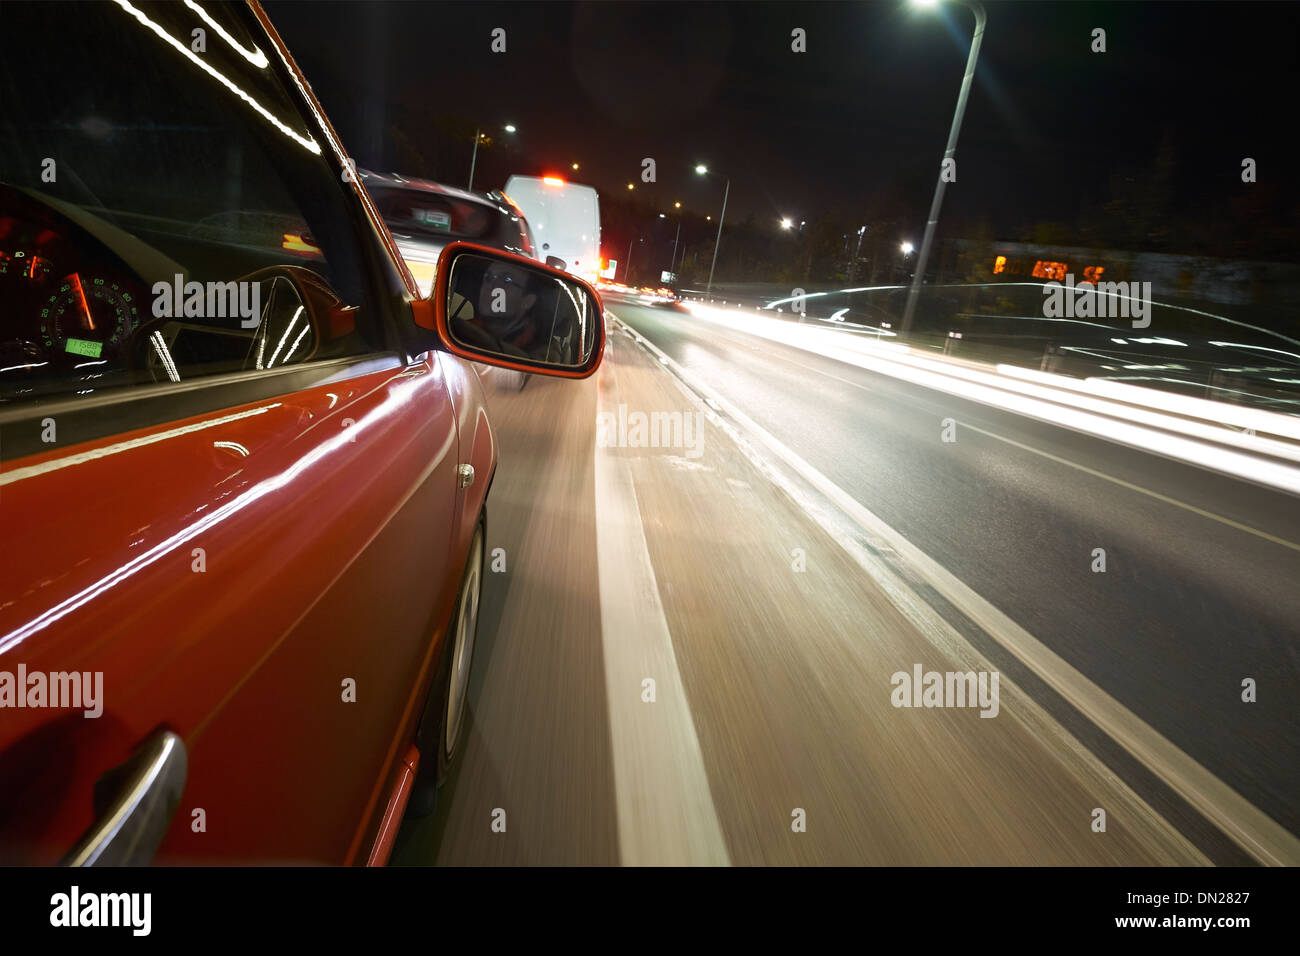 man driving car night stock photos amp man driving car night